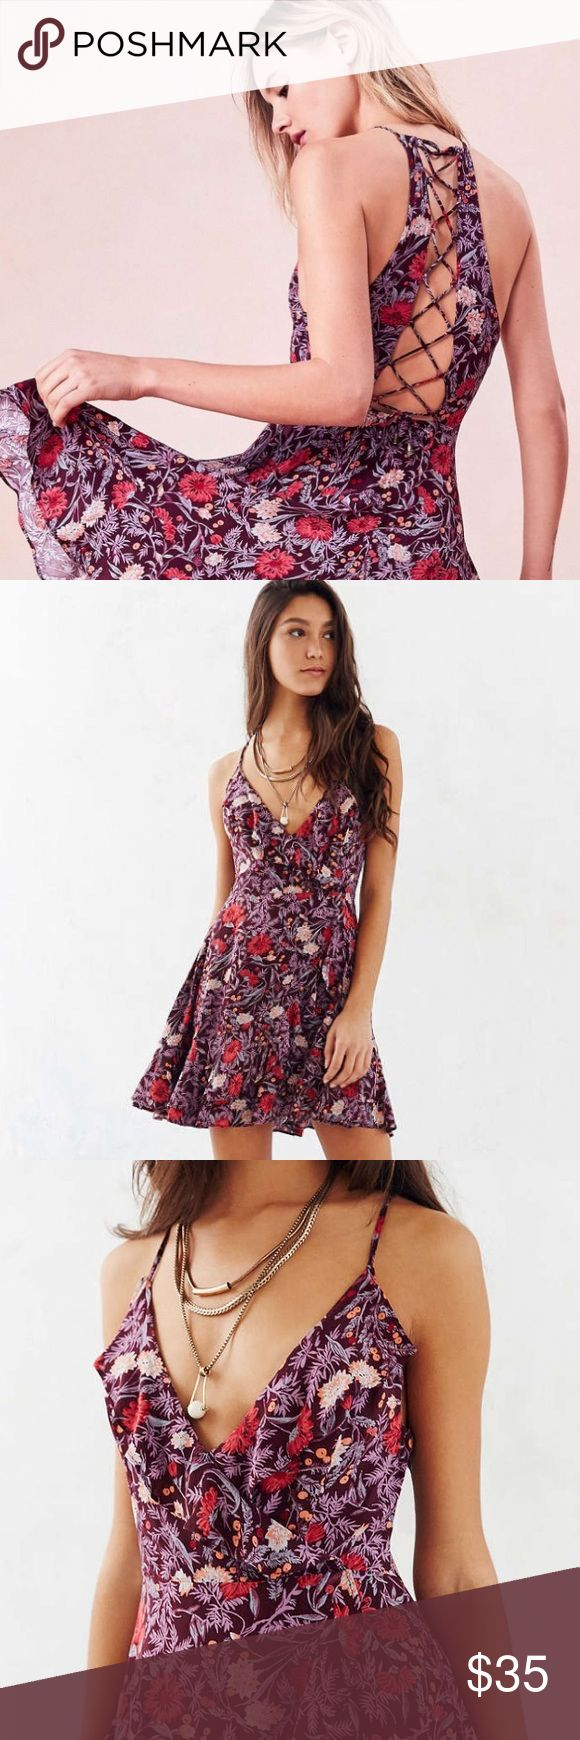 Kimchi Blue Wrap Dress Super cute dress in a pretty floral pattern! Size 0, fits XS-S. Worn once to a wedding and it was comfy and perfect for dancing  Urban Outfitters Dresses Mini